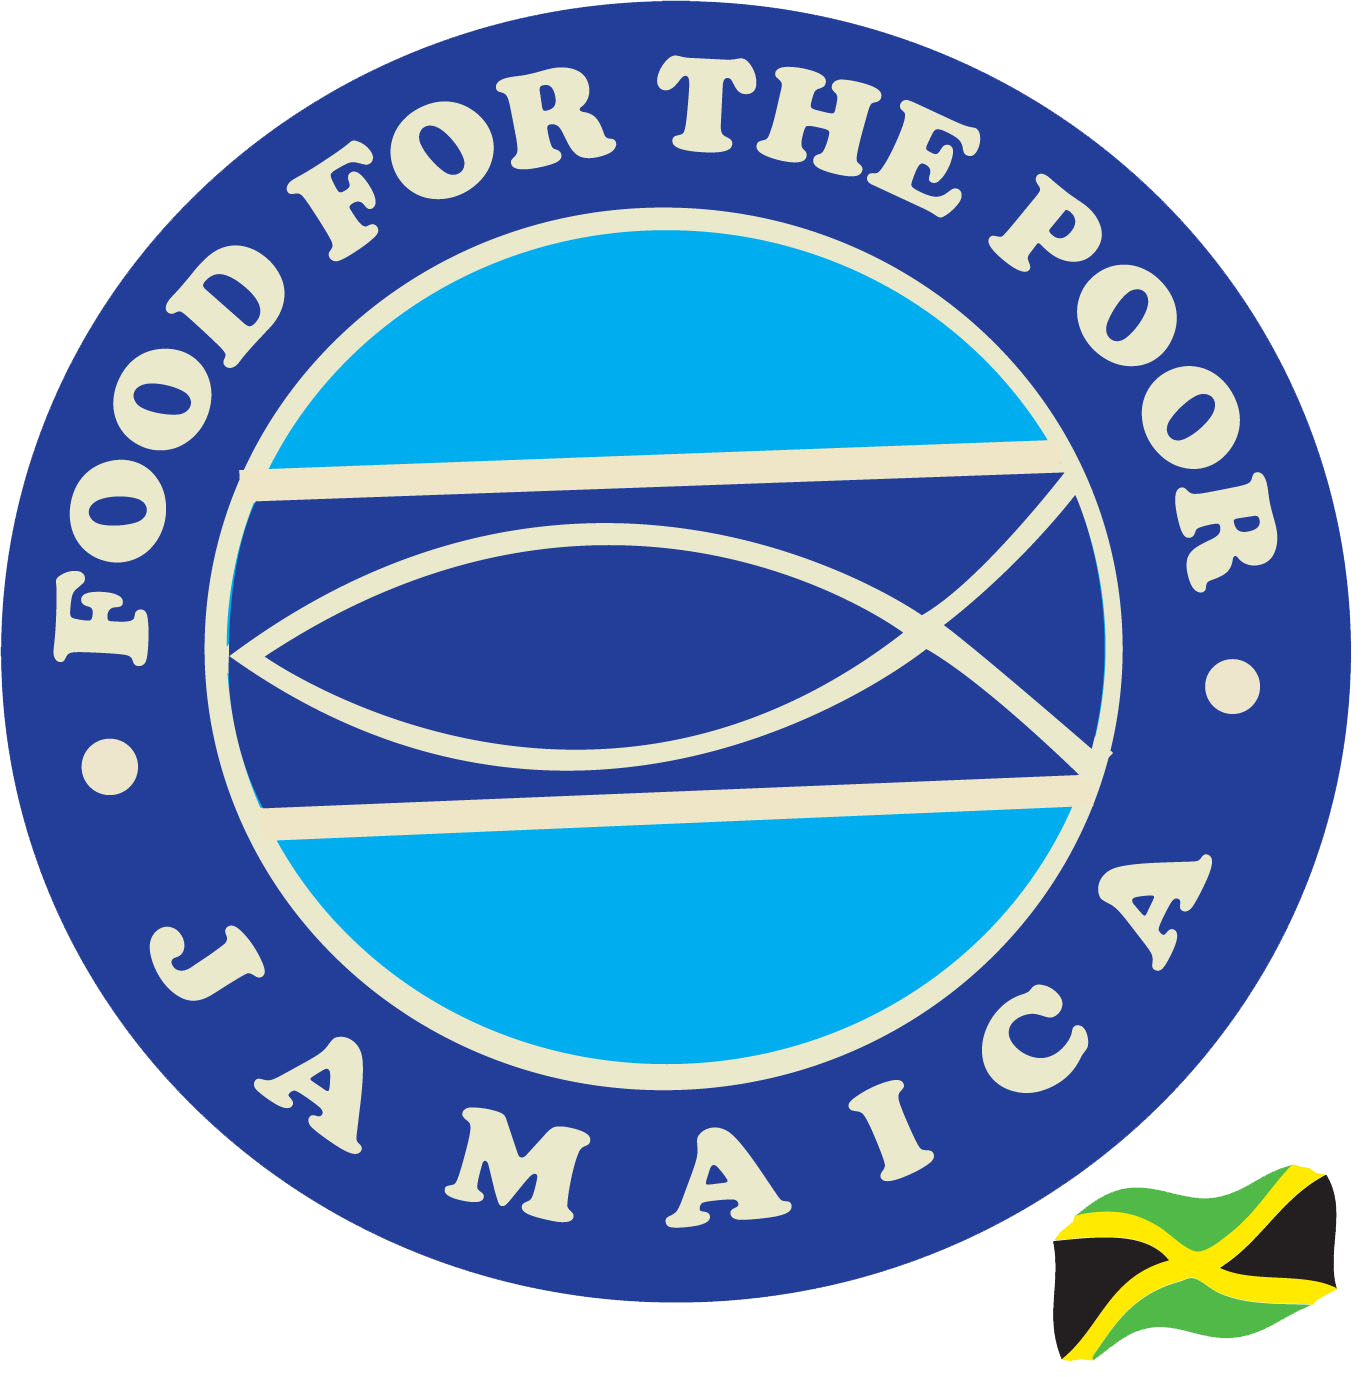 Food For The Poor Jamaica